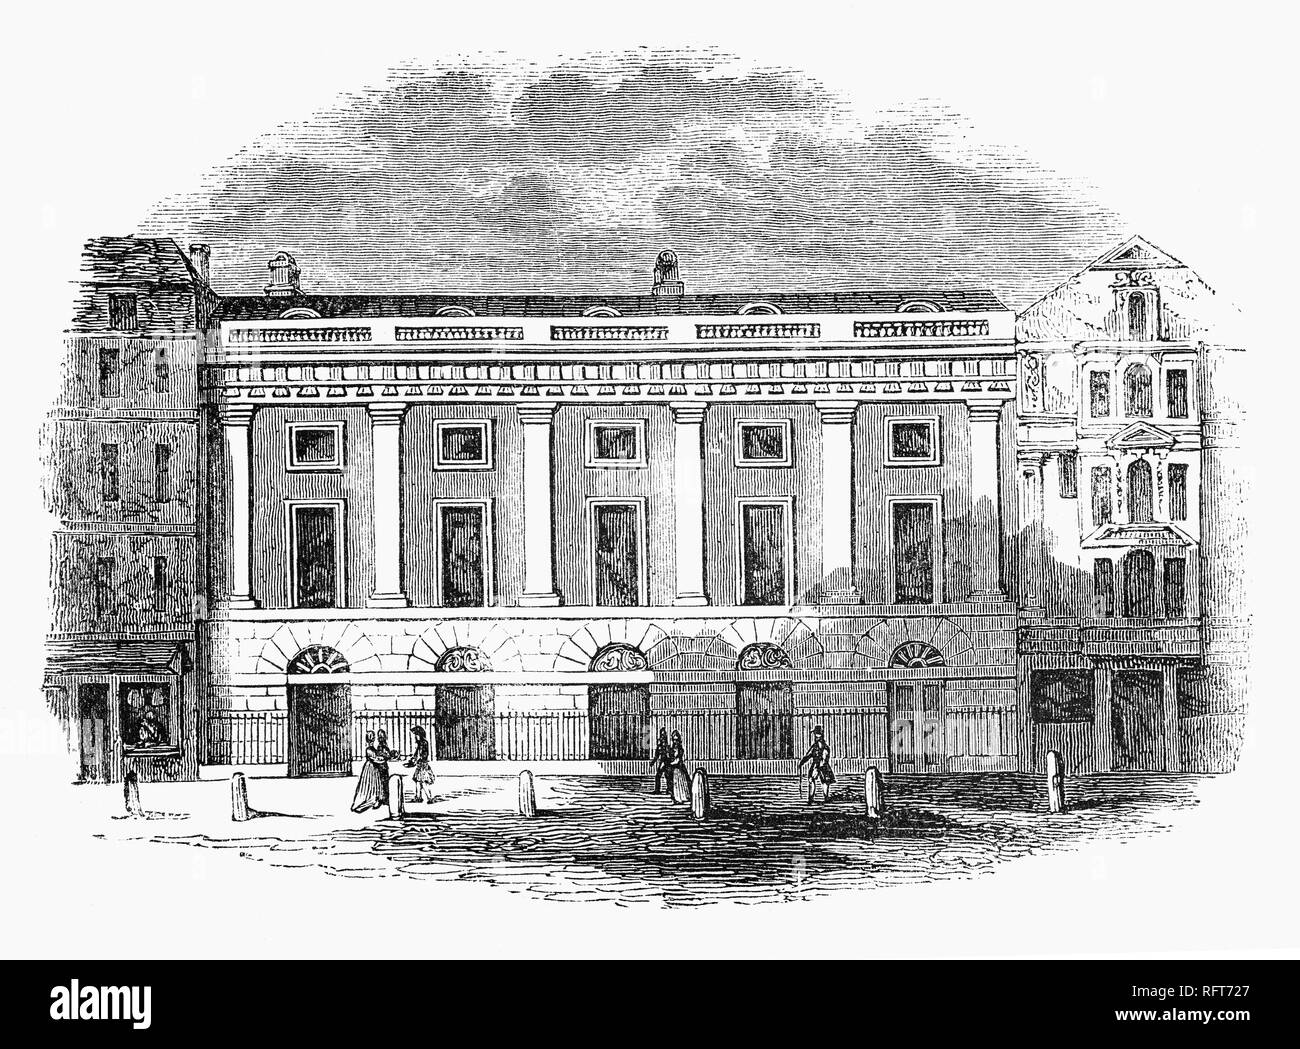 The old East India House, London headquarters of the East India Company, from which much of British India was governed until the British government took control of the Company's possessions in India in 1858. It was located in Leadenhall Street in the City of London. The first East India House on the site was an Elizabethan mansion, previously known as Craven House, which the Company first occupied in 1648. This was completely rebuilt in 1726–29; and further remodelled and extended in 1796–1800. It was demolished in 1861. - Stock Image